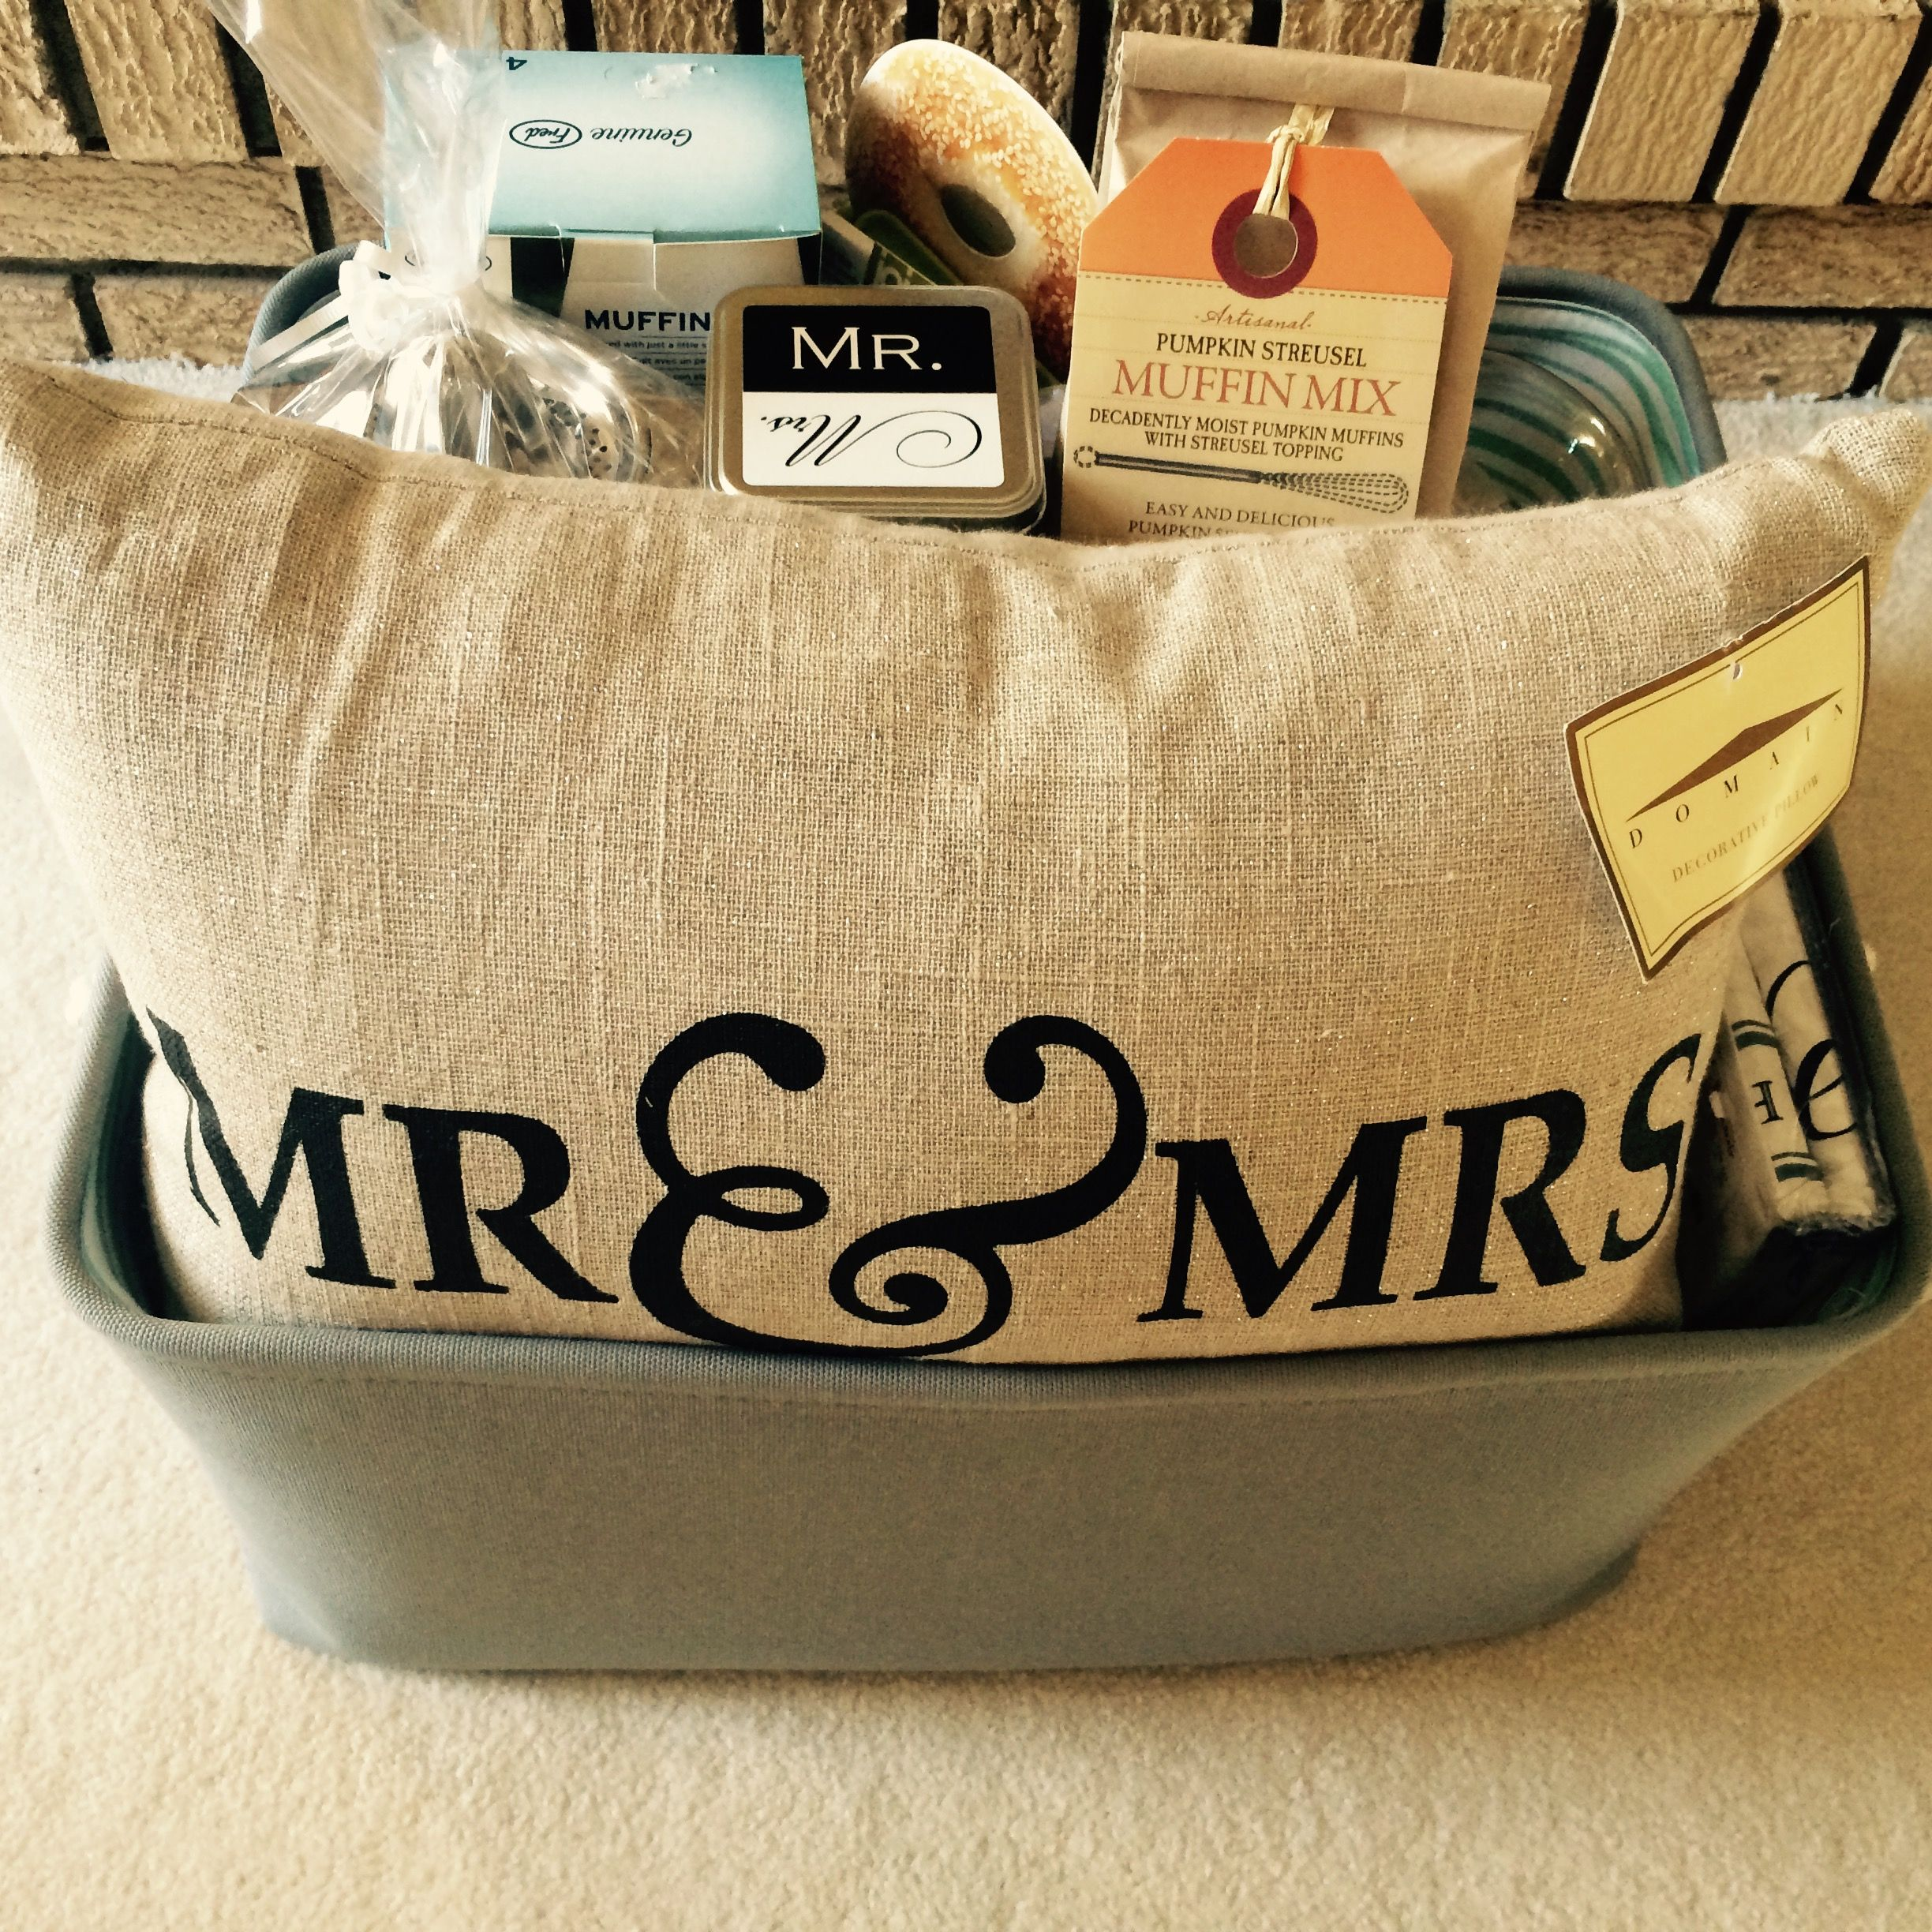 Breakfast In Bed Shower Gift Basket. Poem To Include On